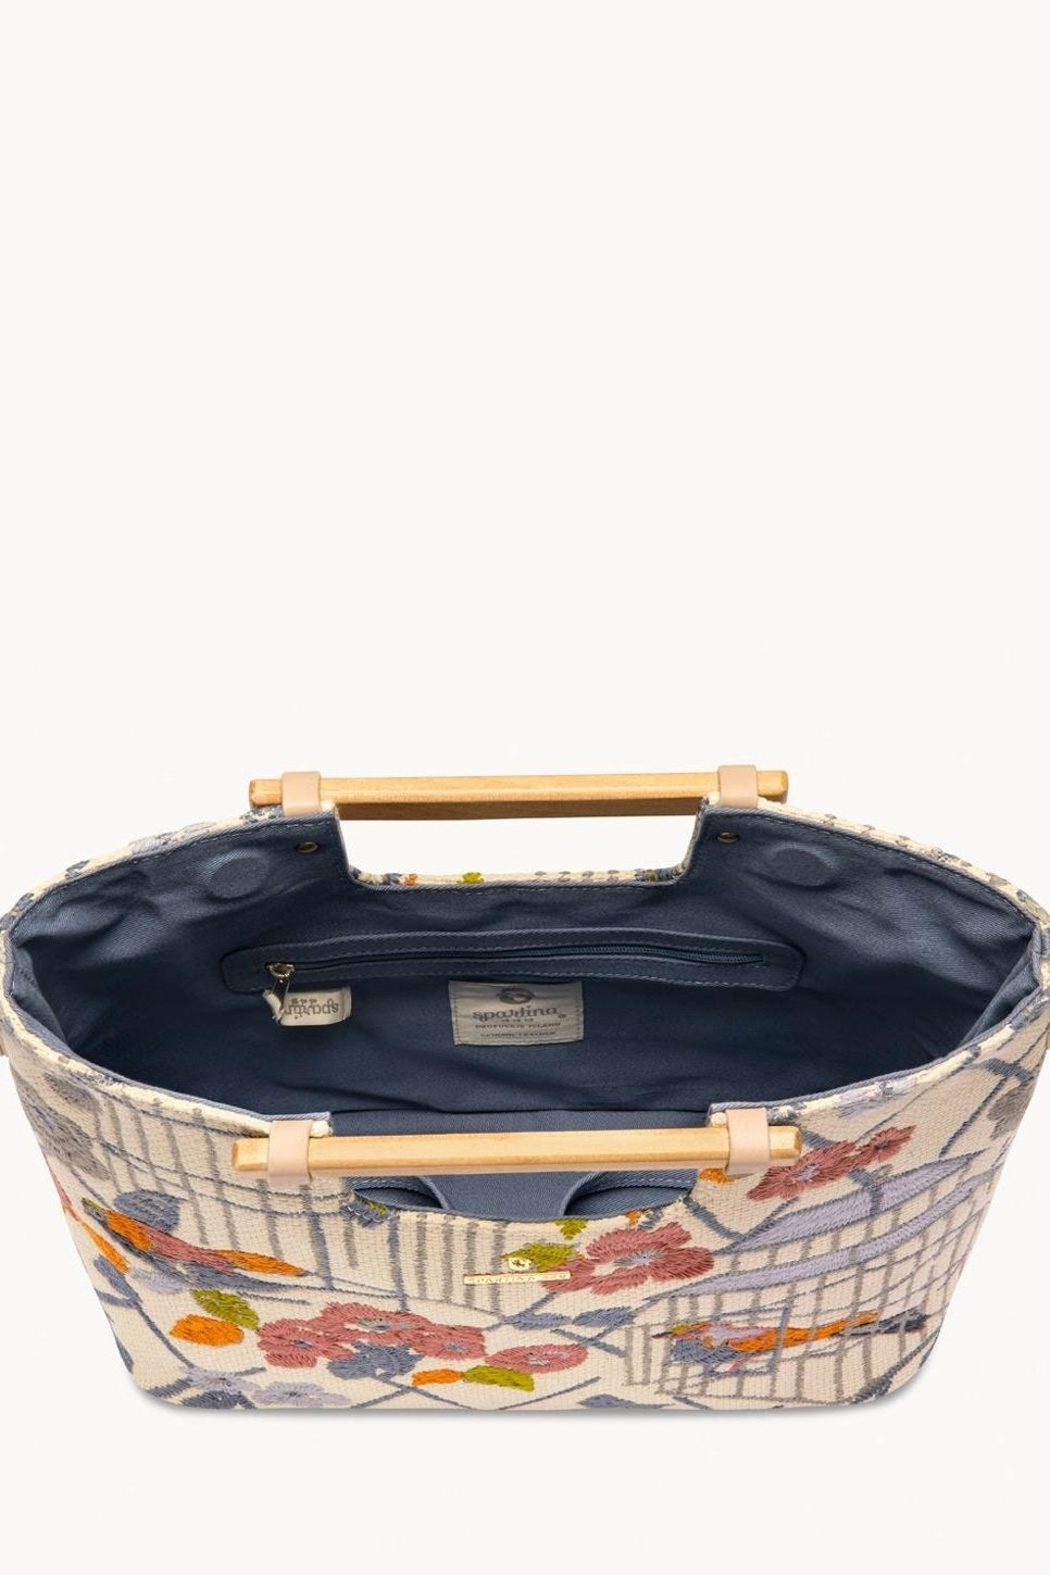 Spartina 449 Songbird Embroidered Tote - Front Full Image